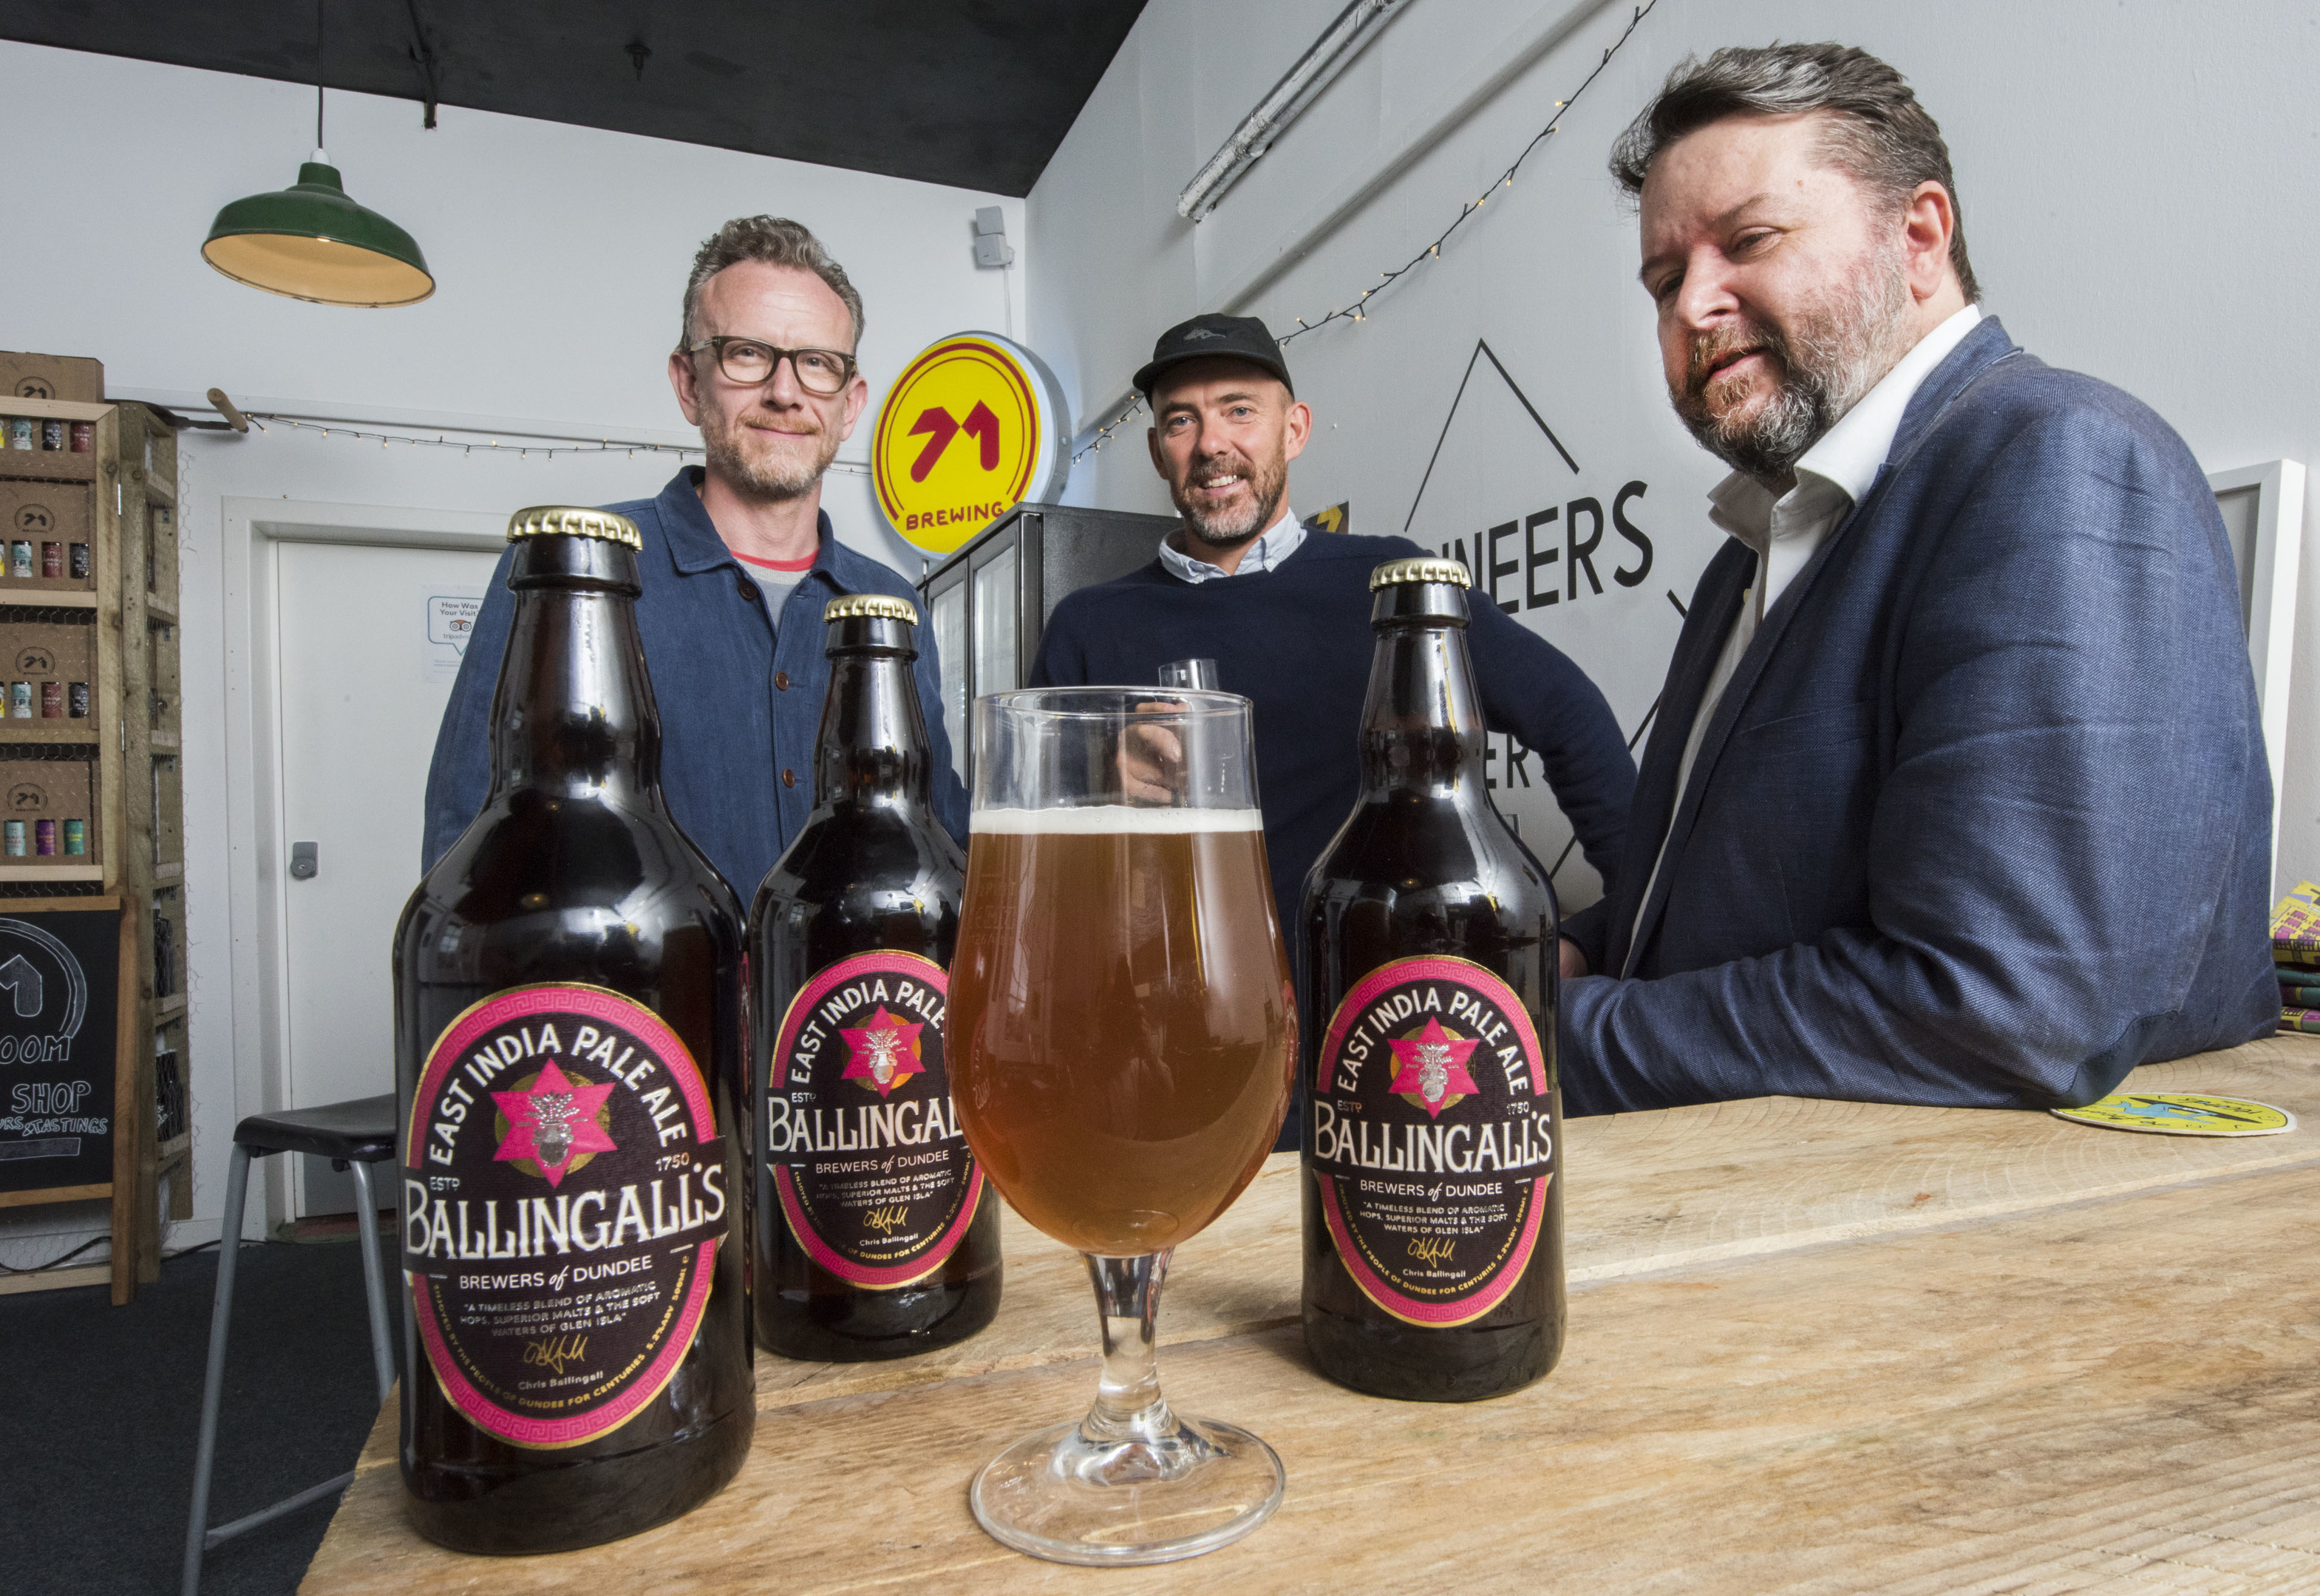 Old Dundee beer Ballingals is back for WestFest. Pictured (left to right) is brewer Duncan Alexander, Oliver Pilcher and Chris Ballingall trying the new beer